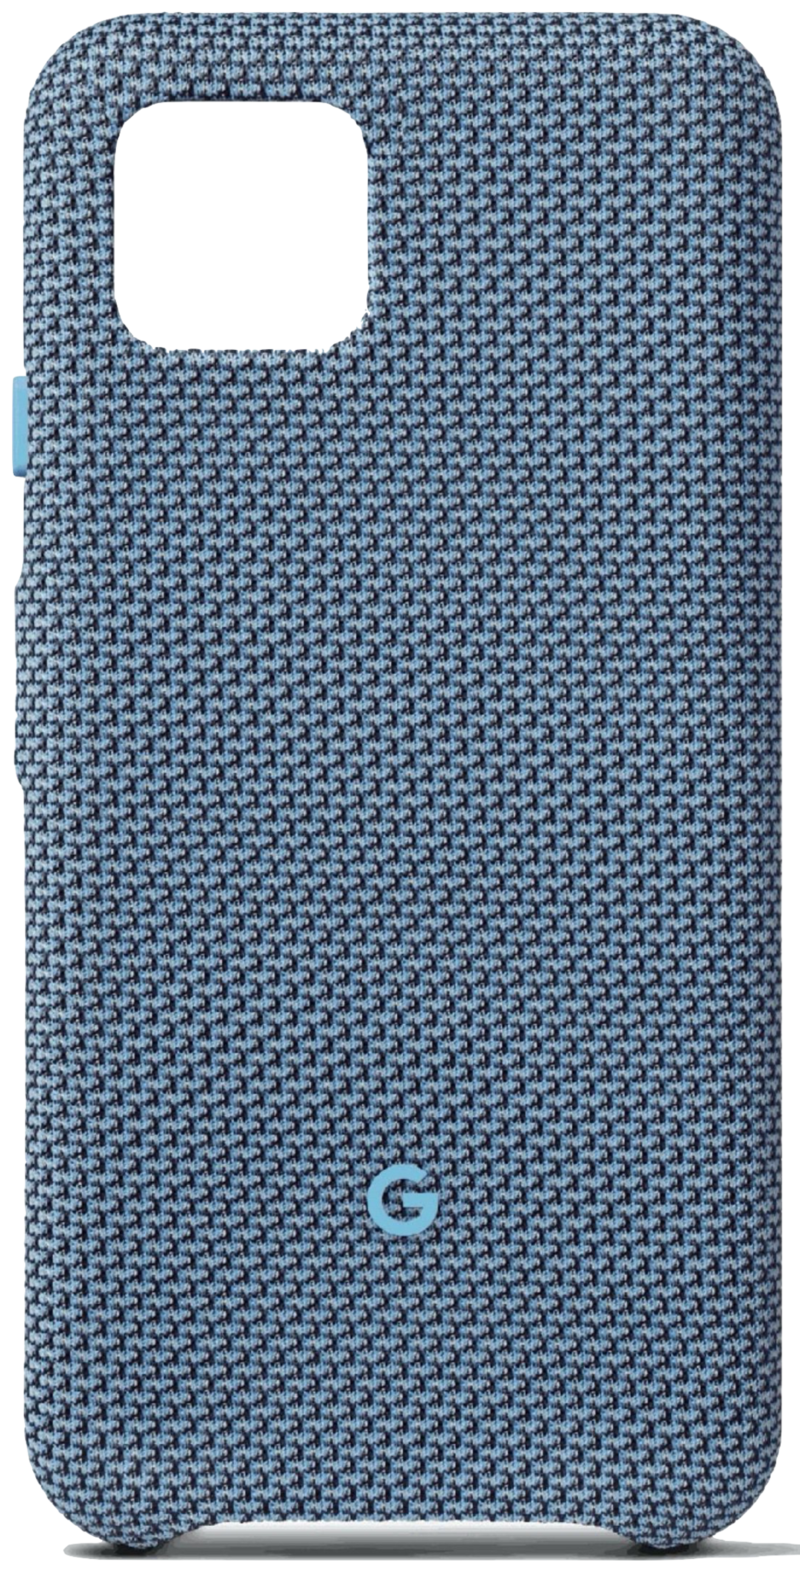 google-fabric-case-blue-pixel-4-cropped.